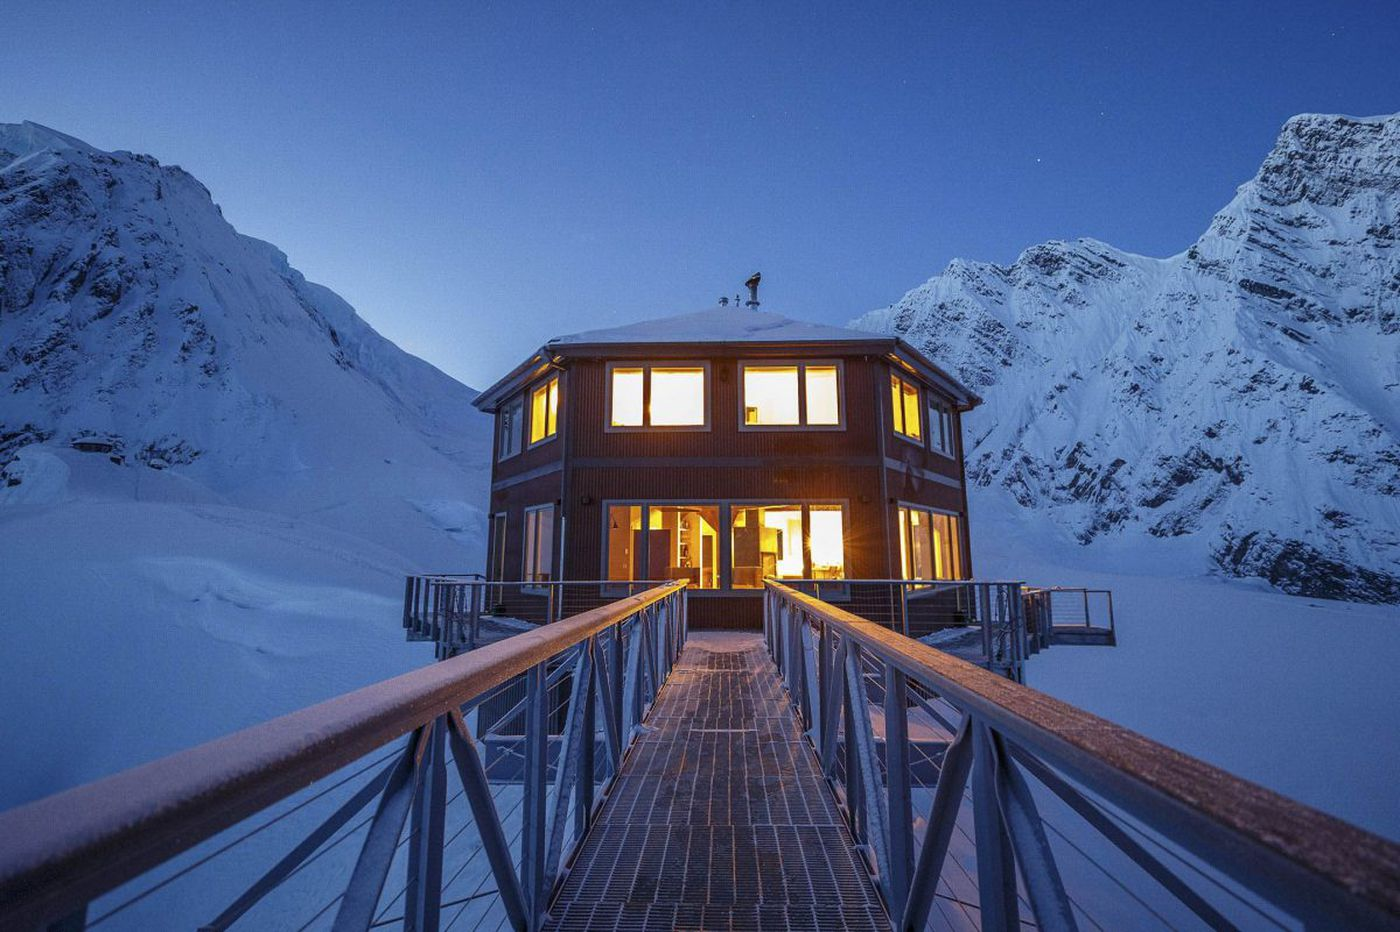 Sheldon Chalet is Denali National Park's first - and last - luxury hotel